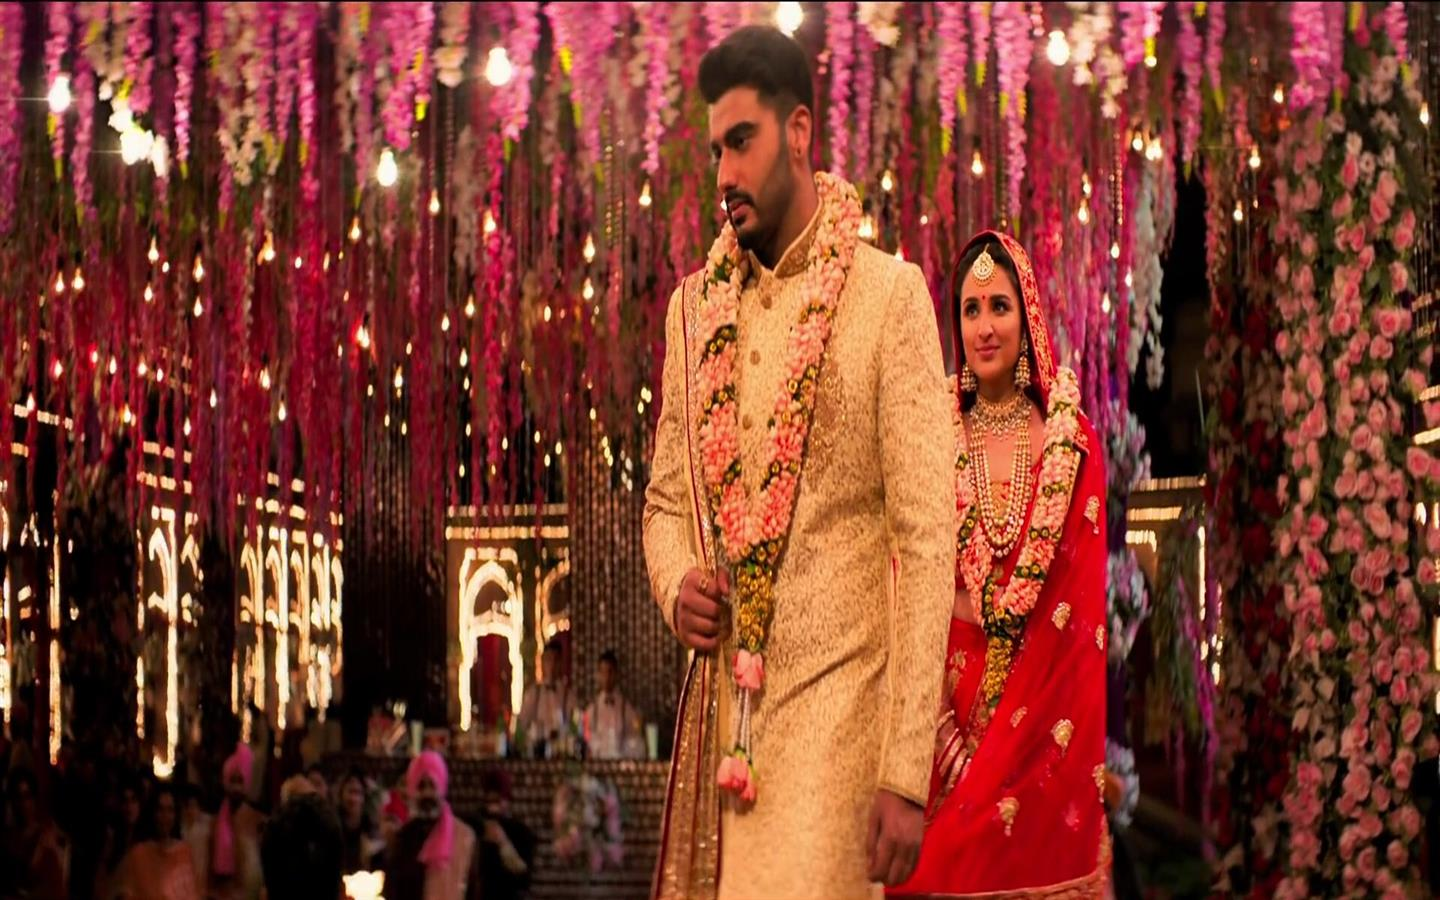 1440x900 Parineeti Chopra Marriage with Arjun Kapoor in Namaste England